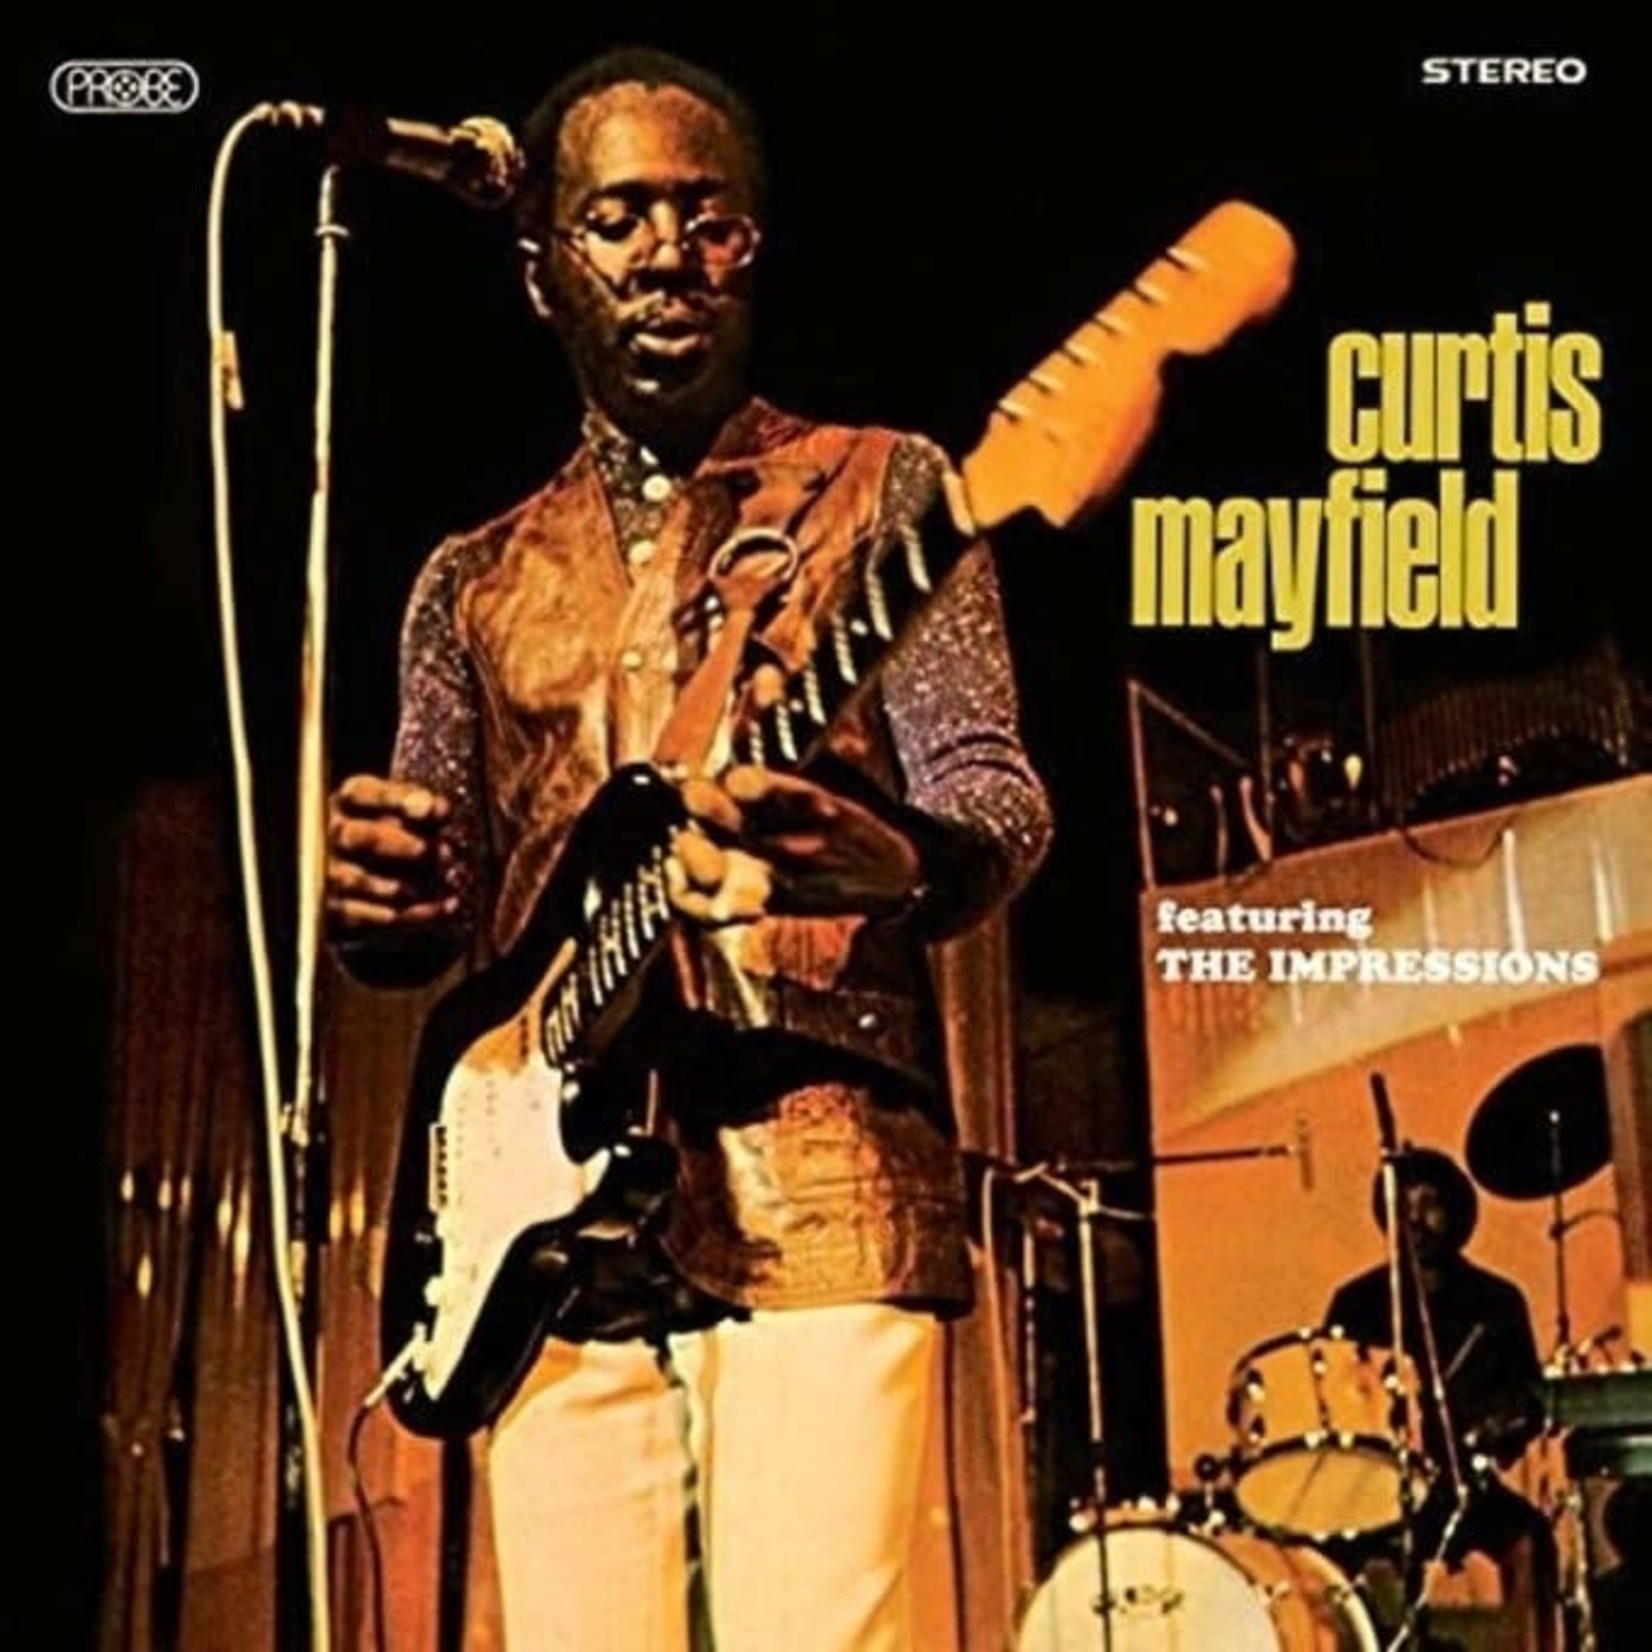 Vinyl Curtis Mayfield - Curtis Mayfield featuring The Impressions (180g)